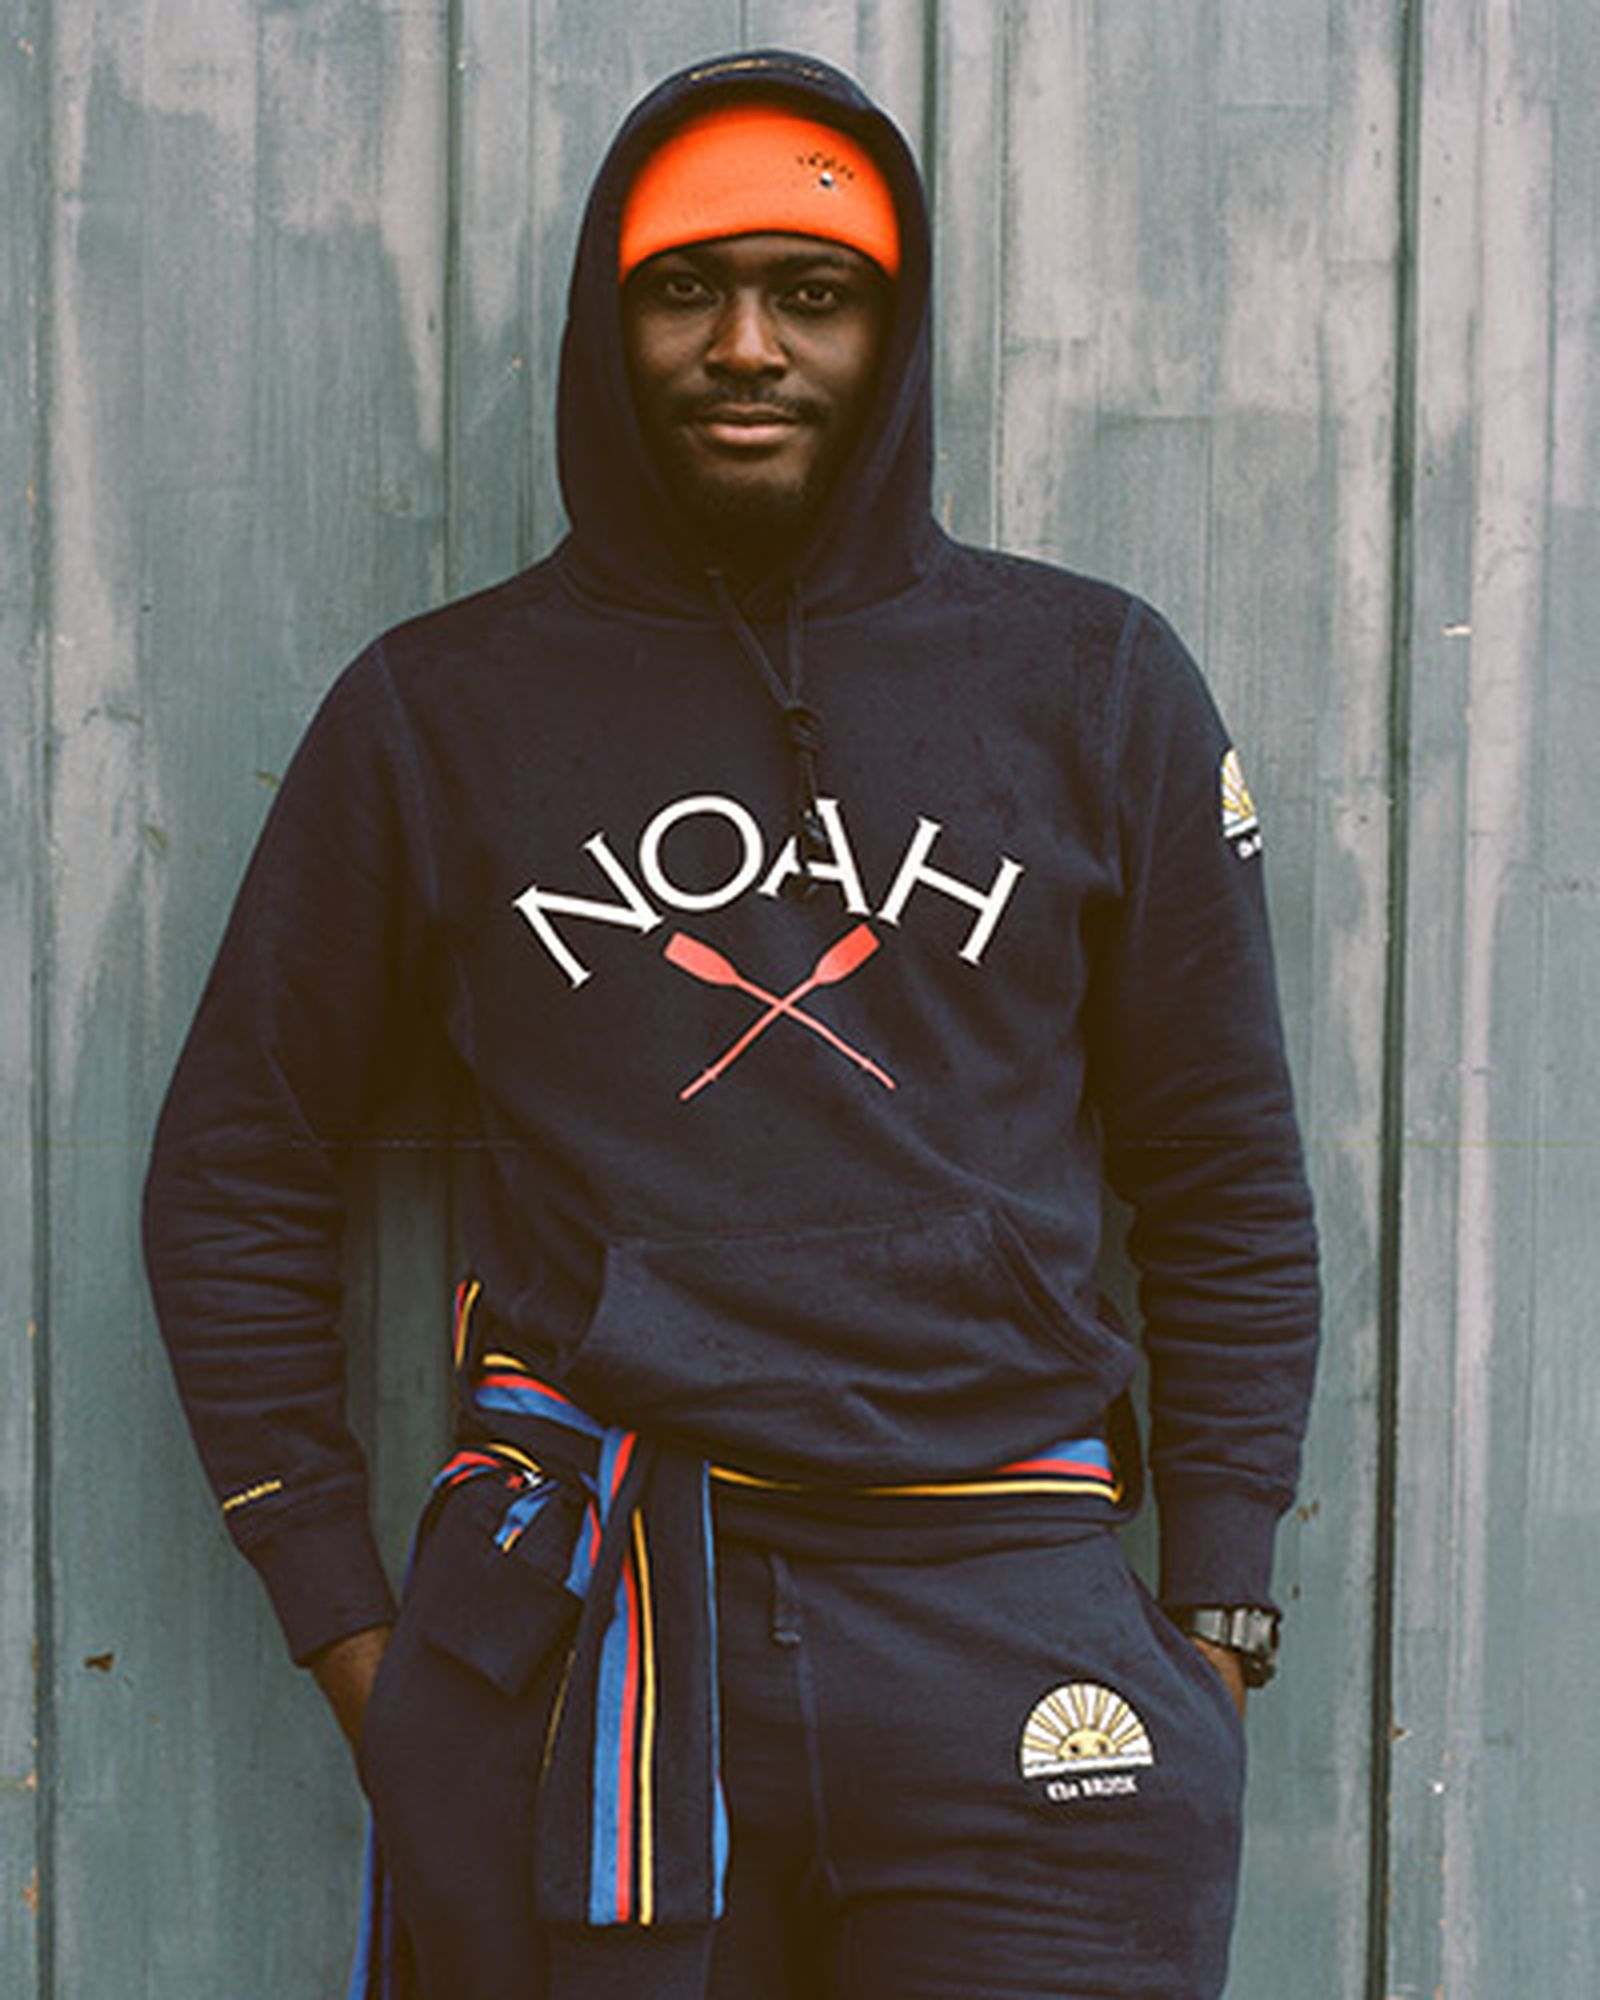 noah-rowing-blazers-collection-20